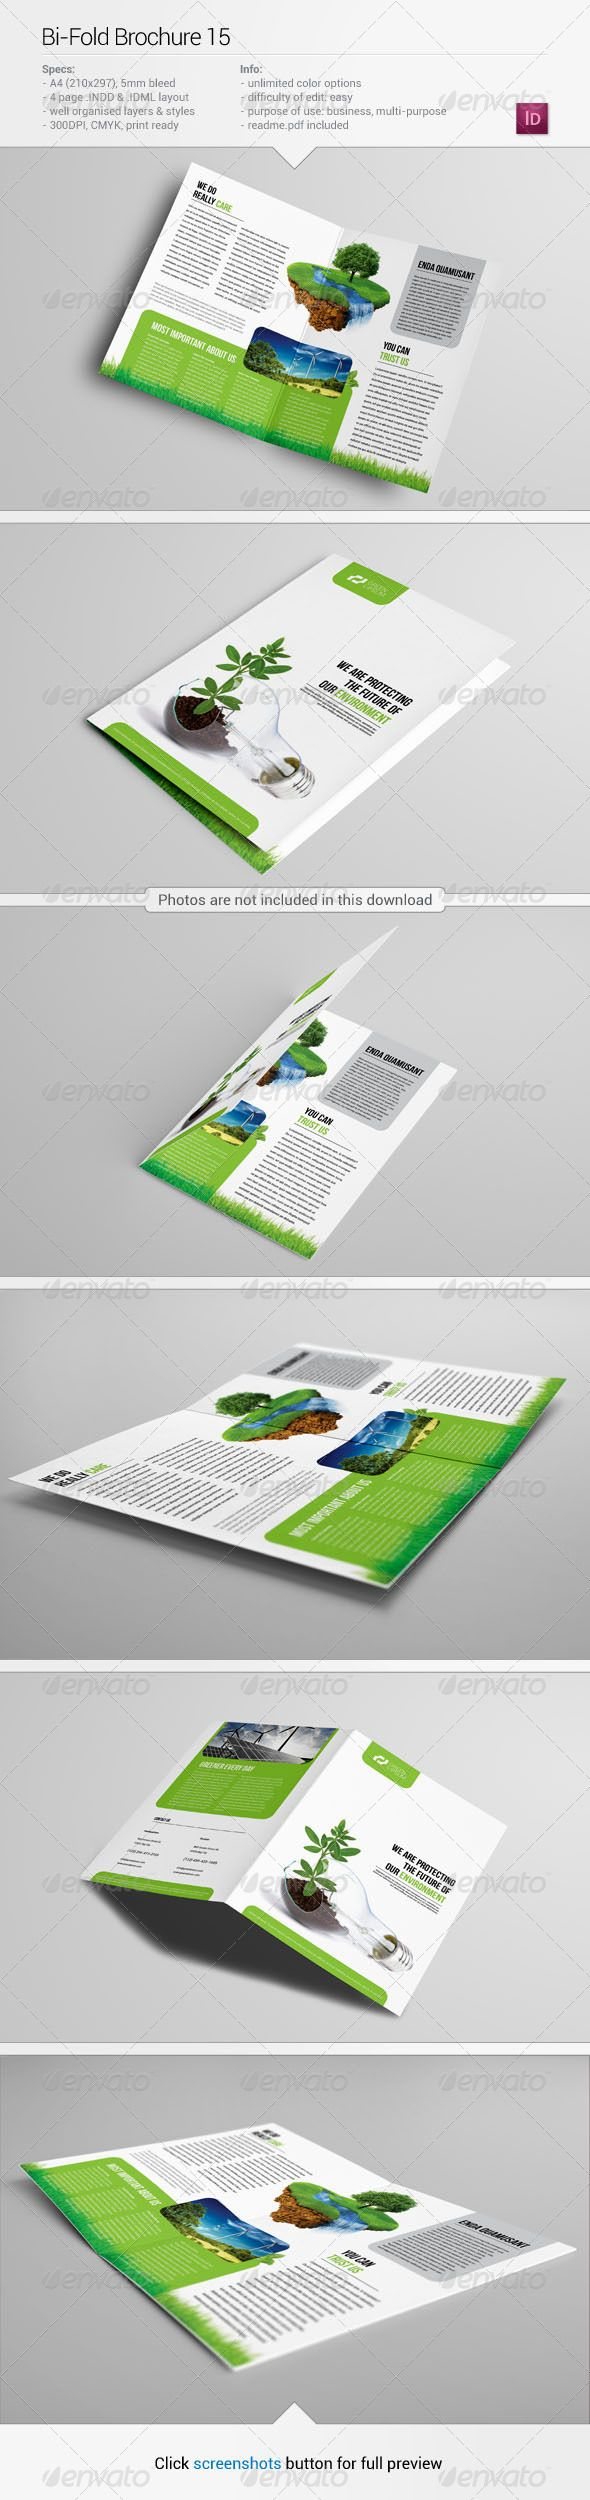 Bi-Fold Brochure 15 #GraphicRiver About this item Specifications: + 420×297mm (2x A4), + 300 dpi, + CMYK, + Bi-fold, + Unlimited color options, + 5mm bleeds, + Well organised layers, + Fully editable InDesign .INDD and .IDML files, + Photos and fonts are NOT included (links below and in Read Me file). Fonts used: Roboto – .fontsquirrel /fonts/roboto Bebas Neue – .fontsquirrel /fonts/bebas-neue If you have any questions or a problem with any of my files don't hesistate to contact me via my…